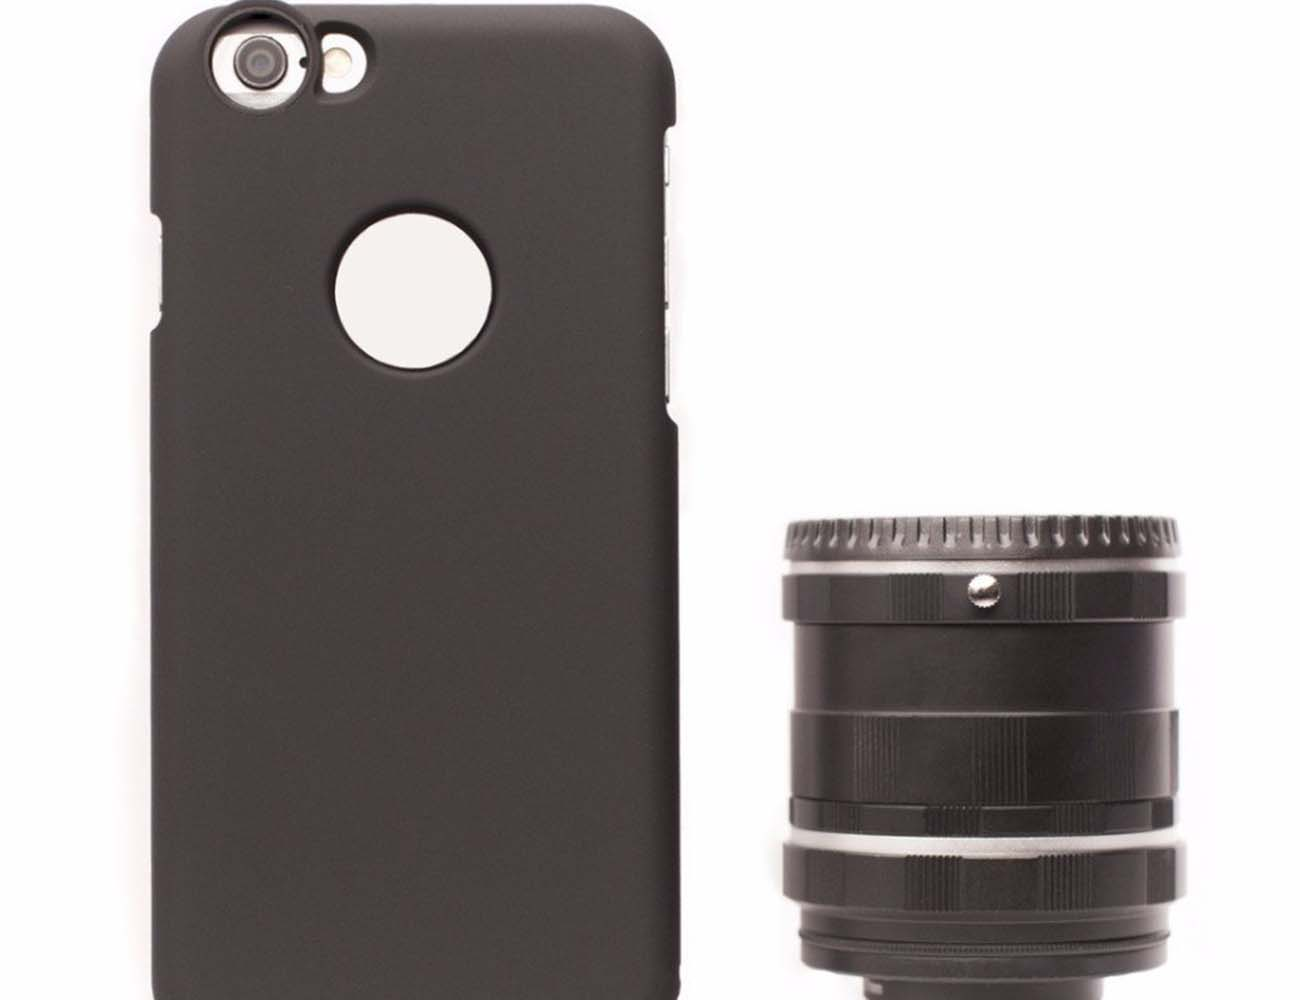 iphone lens adapter turnikit iphone lens adapter for iphone 6 amp 6 plus 11987